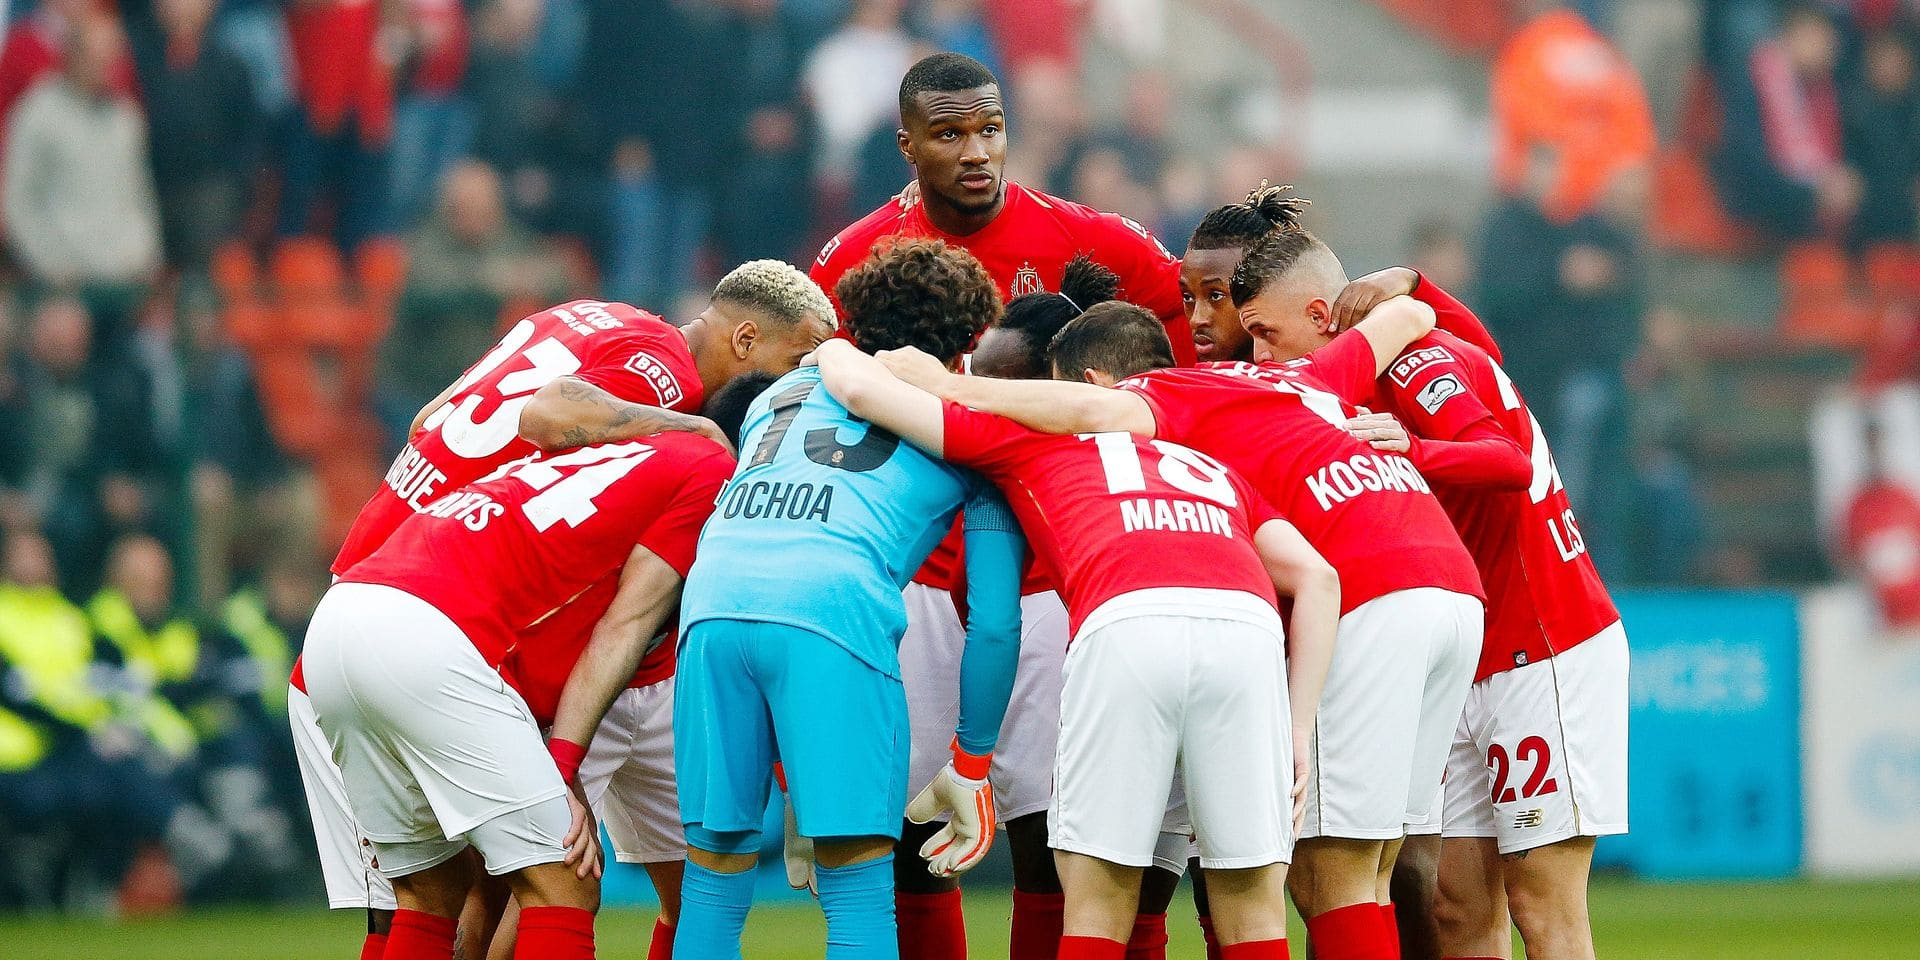 Standard's Obbi Oulare (C upper) and his teammates pictured at the start of a soccer match between Standard de Liege and Club Brugge, Thursday 16 May 2019 in Liege, on day 9 (out of 10) of the Play-off 1 of the 'Jupiler Pro League' Belgian soccer championship. BELGA PHOTO BRUNO FAHY